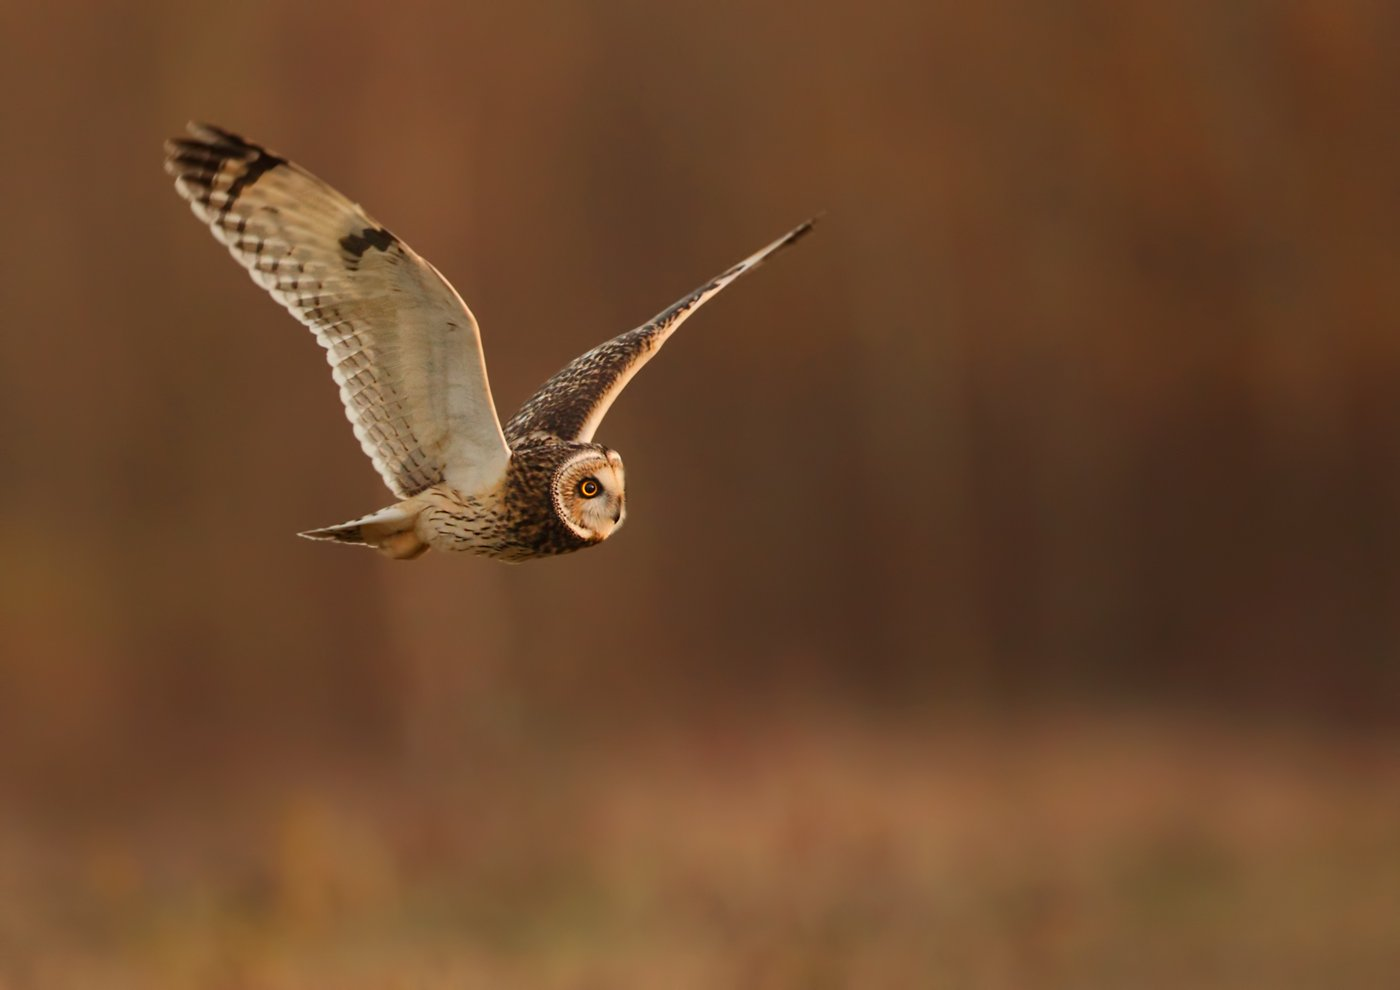 1st Place: Short Eared Owl in Flight (Andy Snape)